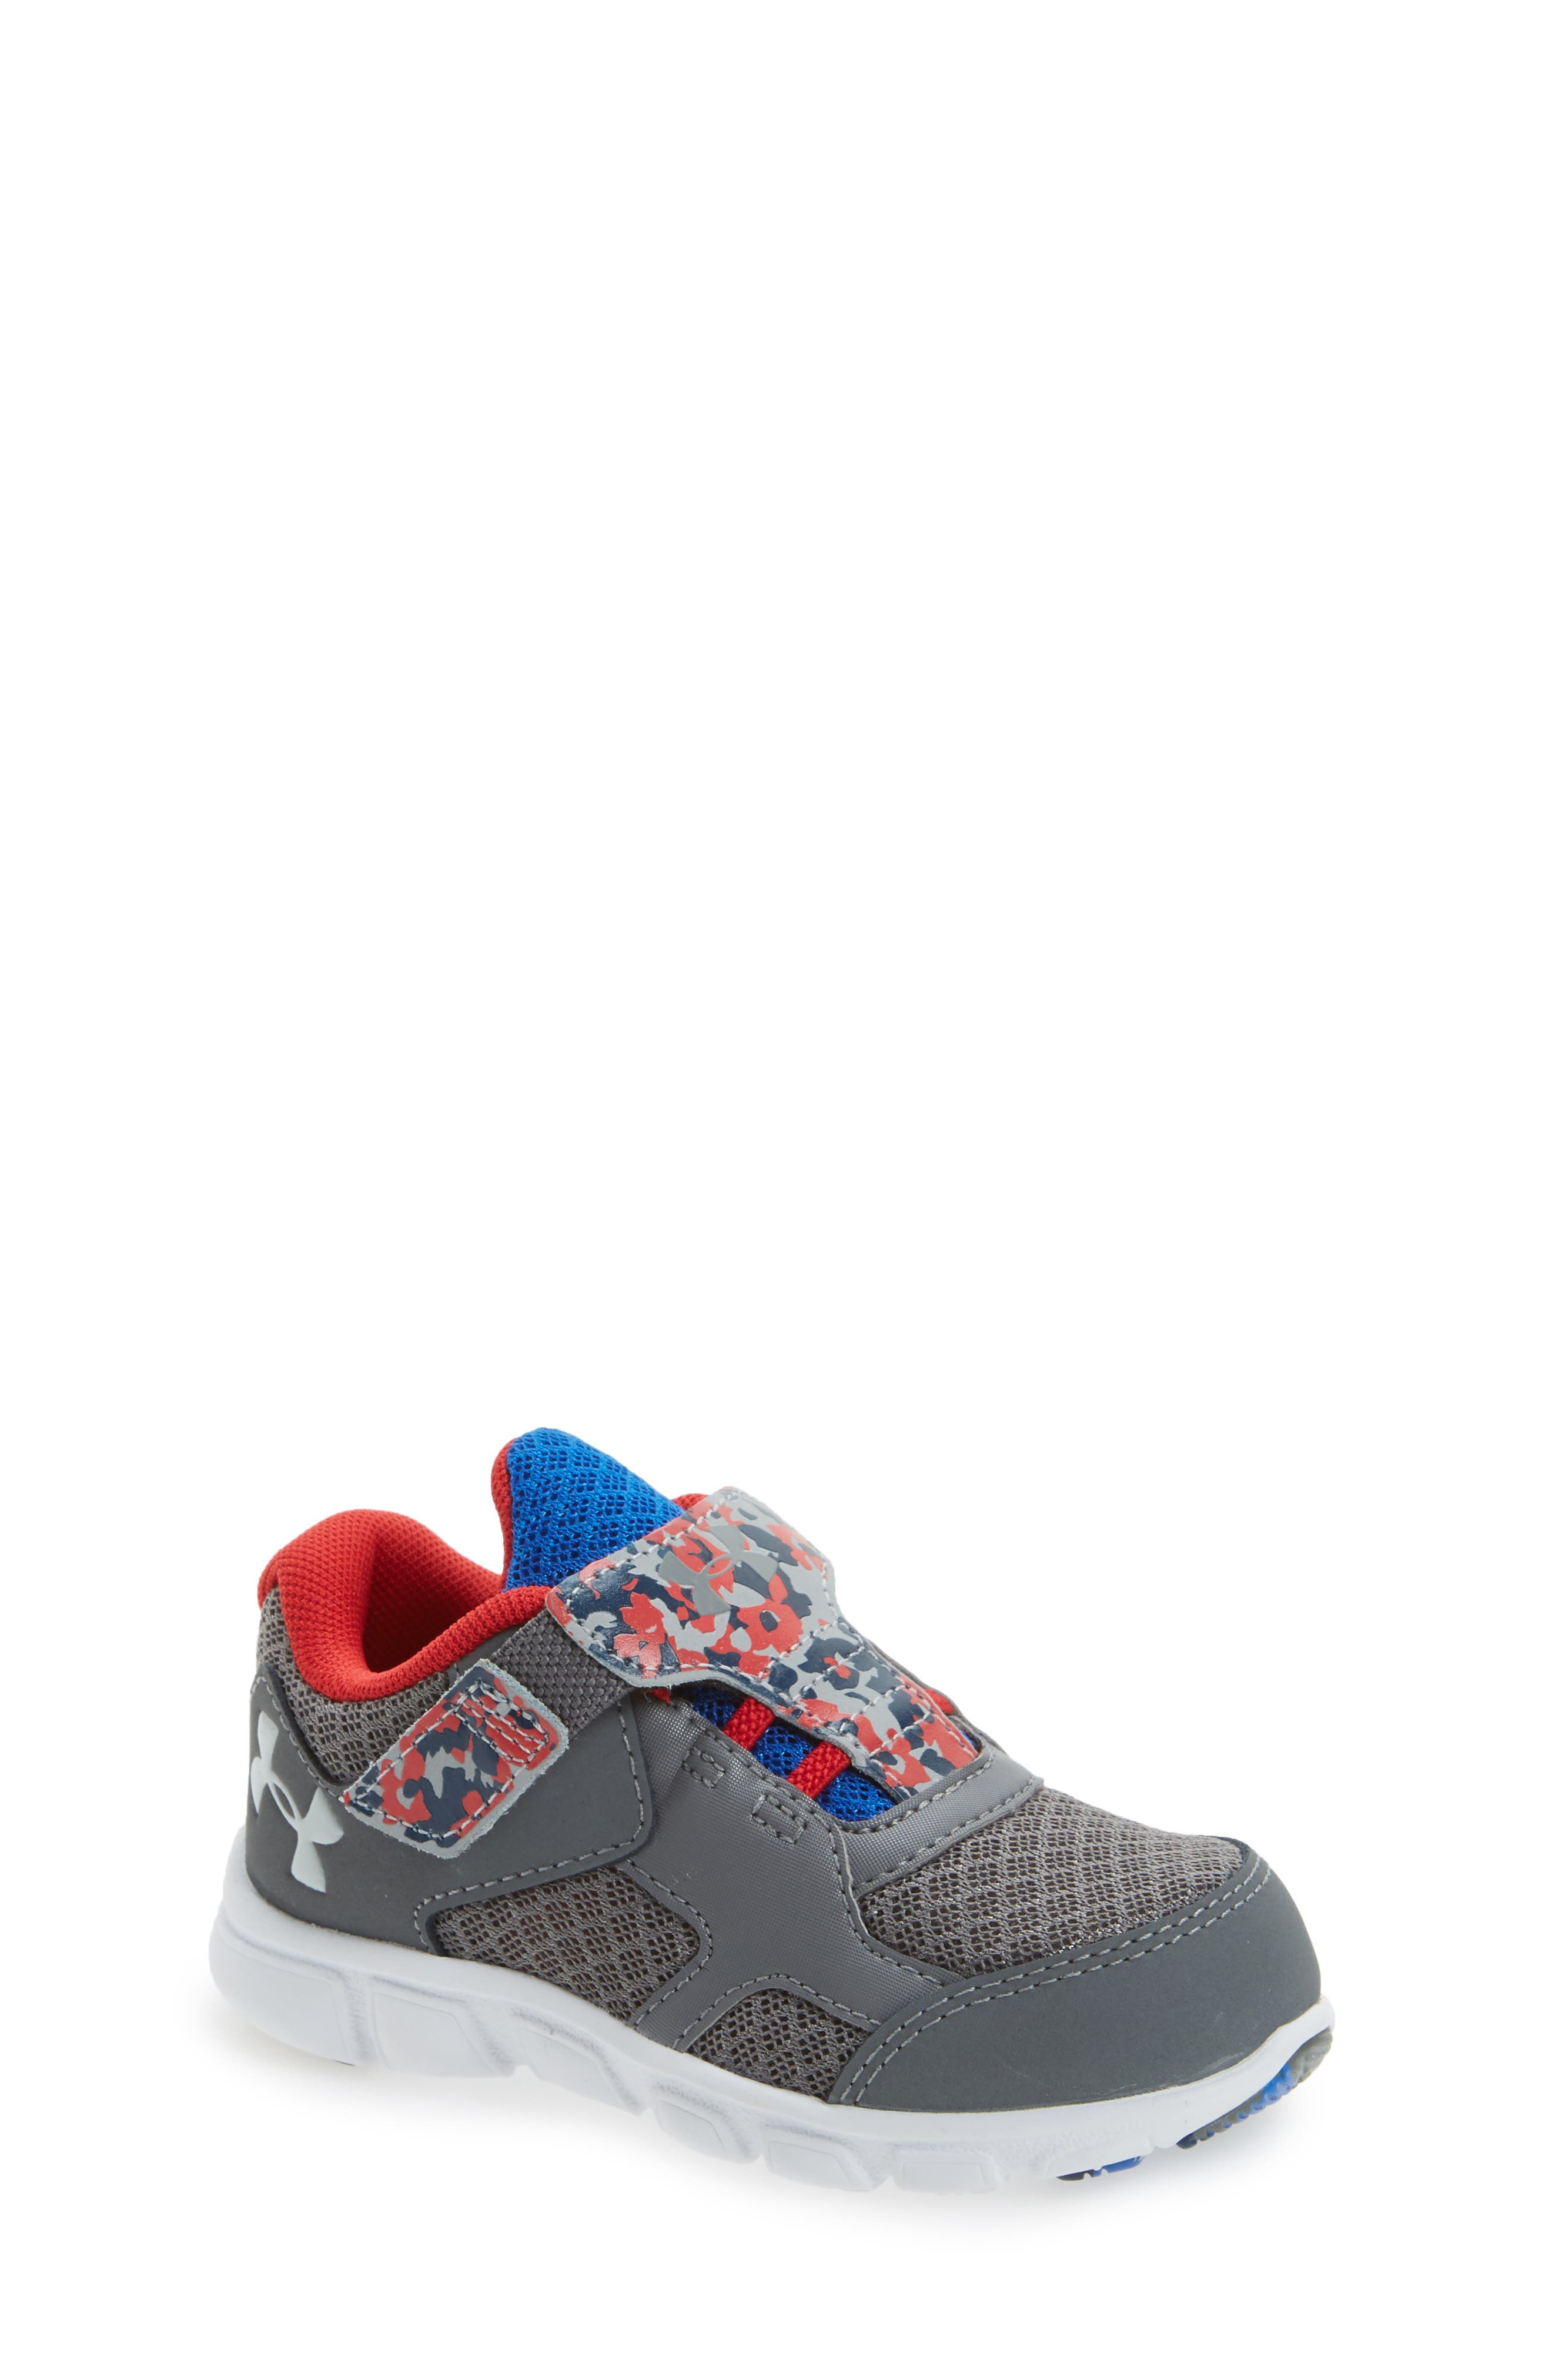 Under Armour Engage II Athletic Shoe Walker & Toddler